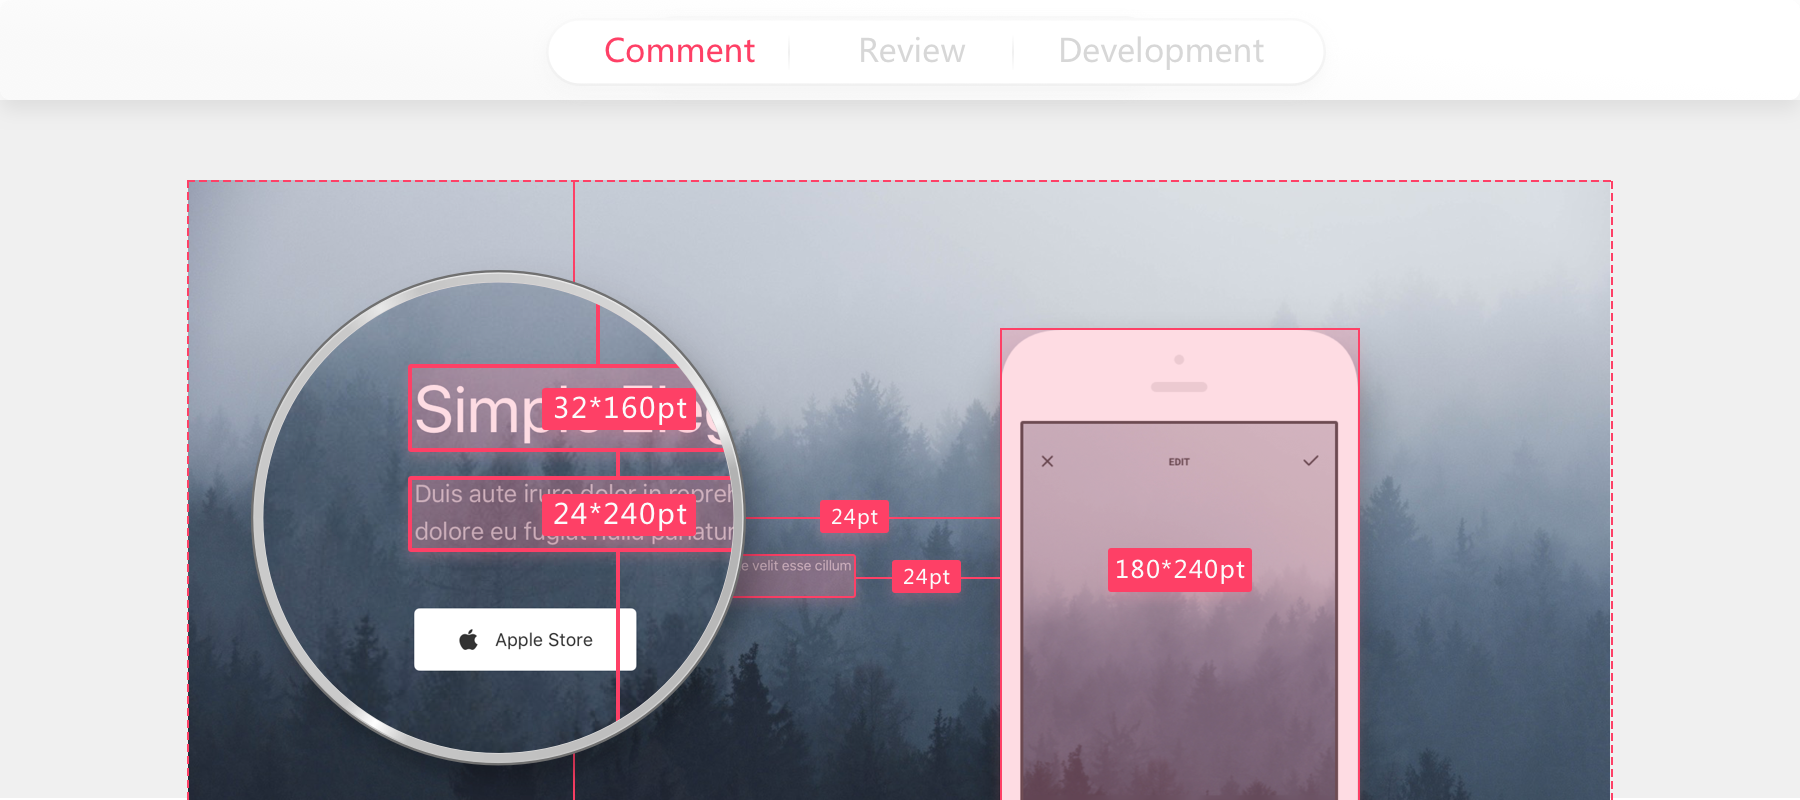 Developers can freely check and download assets, copy CSS codes